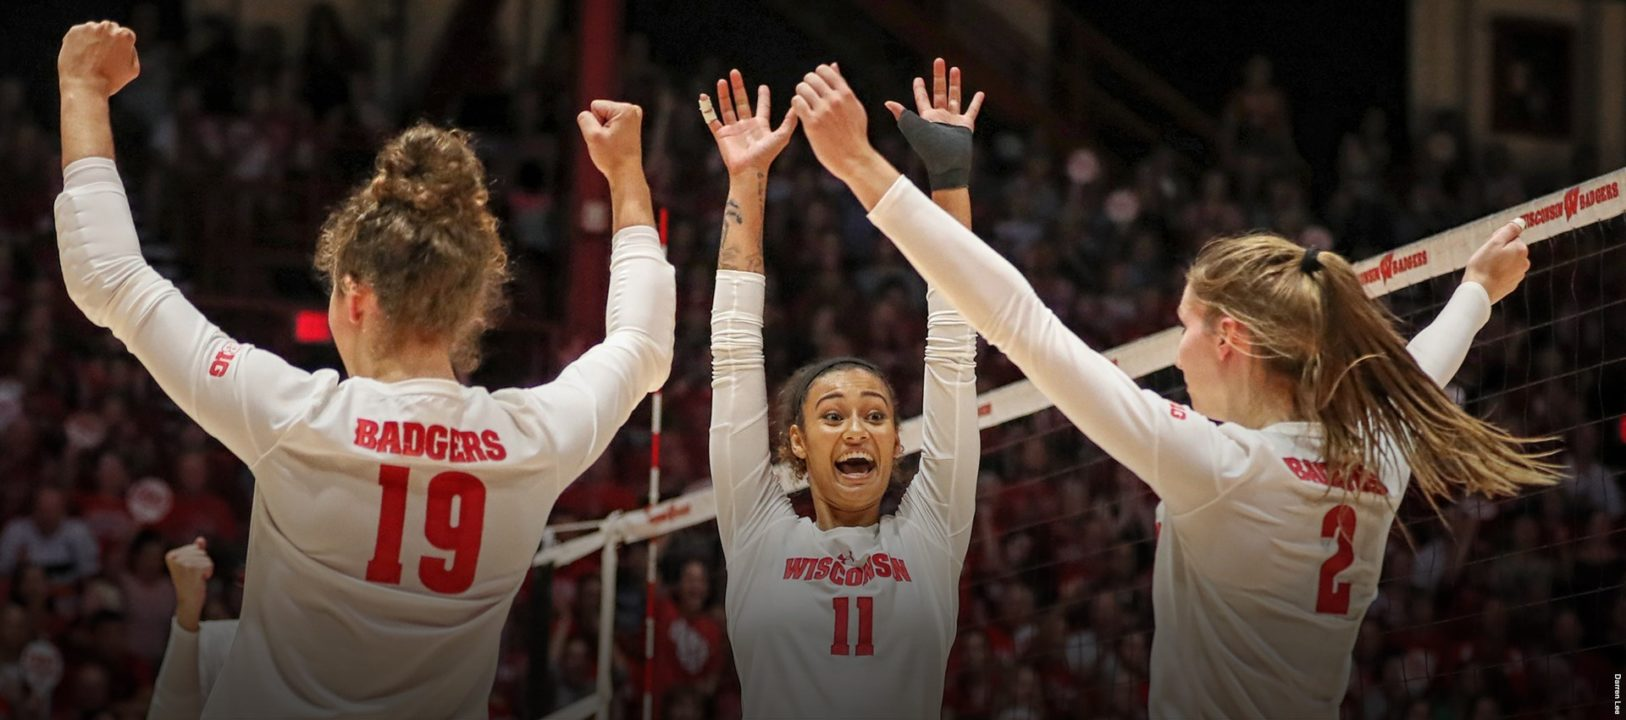 28 Teams, Including 6 from Big Ten, Still Undefeated After 2 Weekends